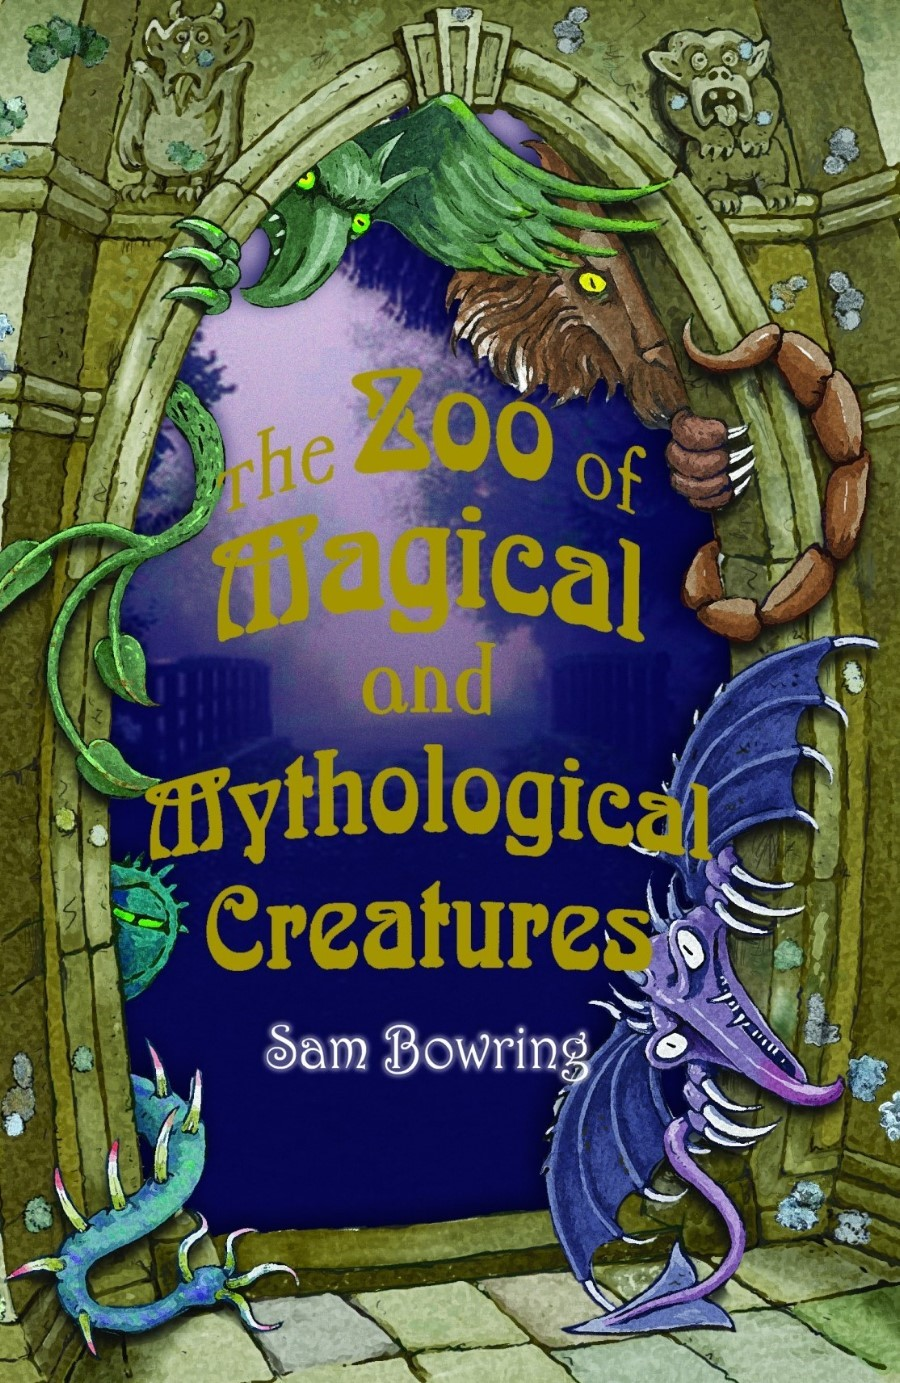 Sam Bowring - The Zoo of Magical and Mythological Creatures